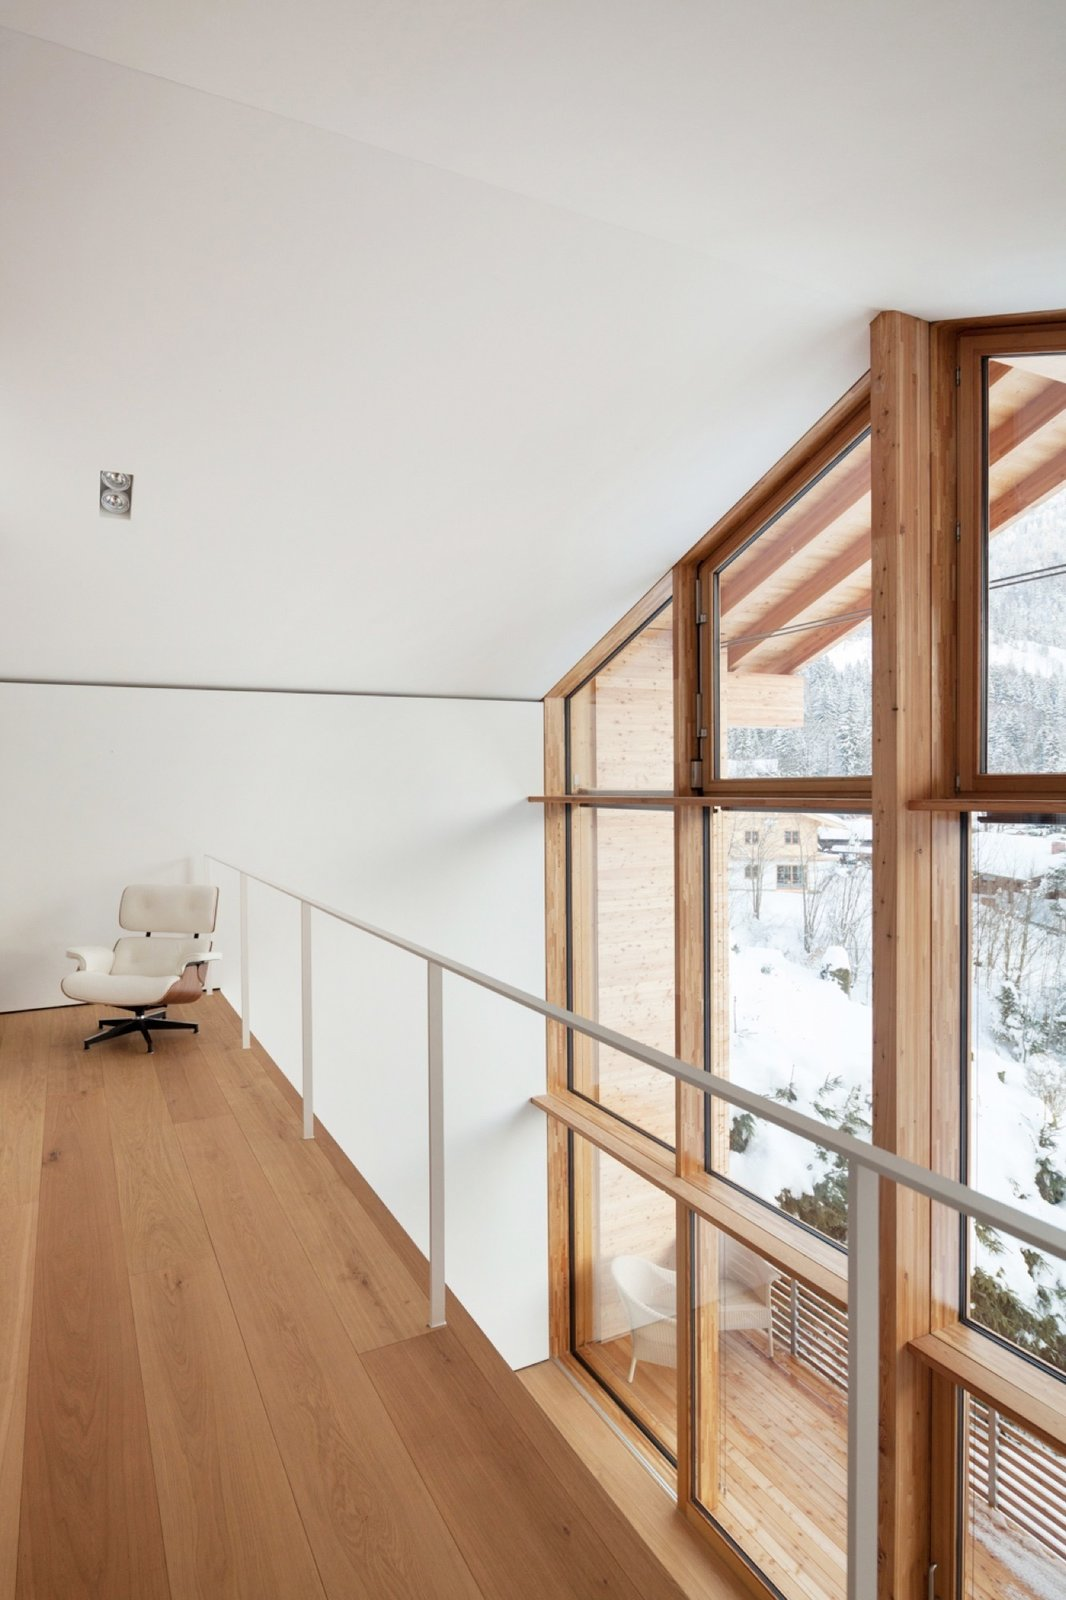 German architecture firm Beer Bembé Dellinger designed this vacation getaway in Bayrischzell, Bavaria, for a couple from Munich.   Photo by Sebastian Schels  Haus Z2 in Bayrischzell